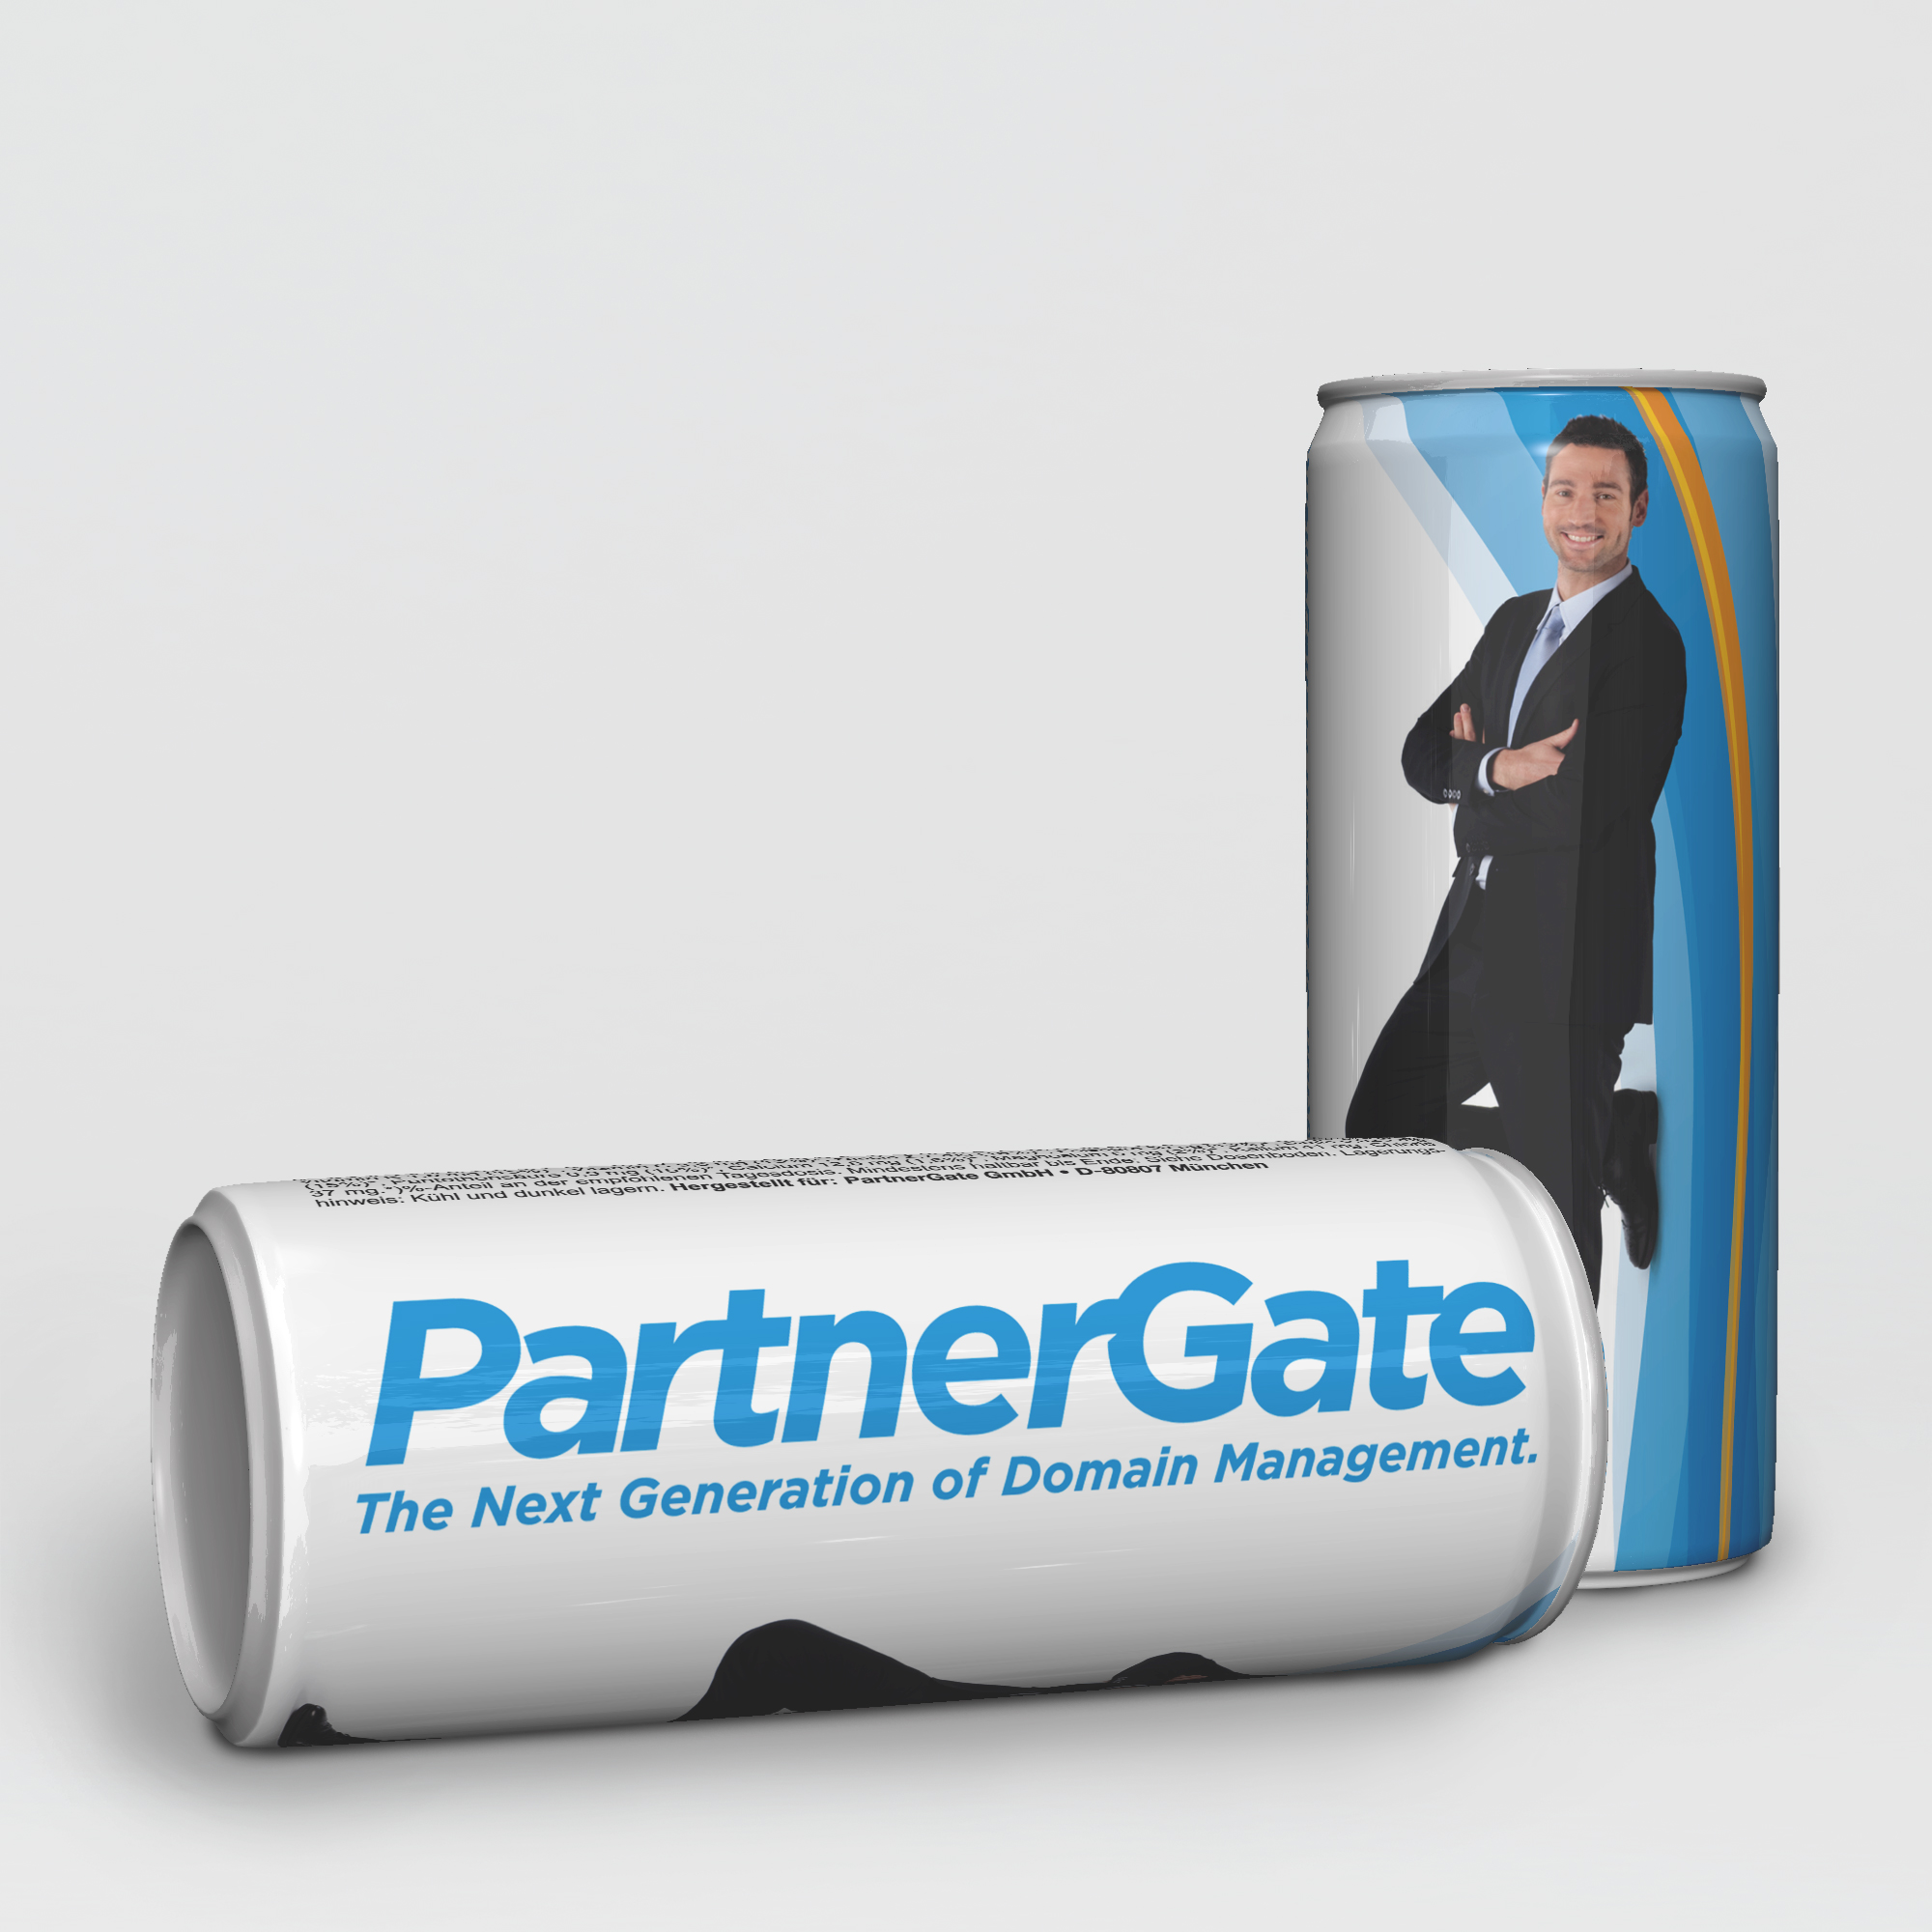 PartnerGate_WHD_Dose.jpg?fit=2000%2C2000